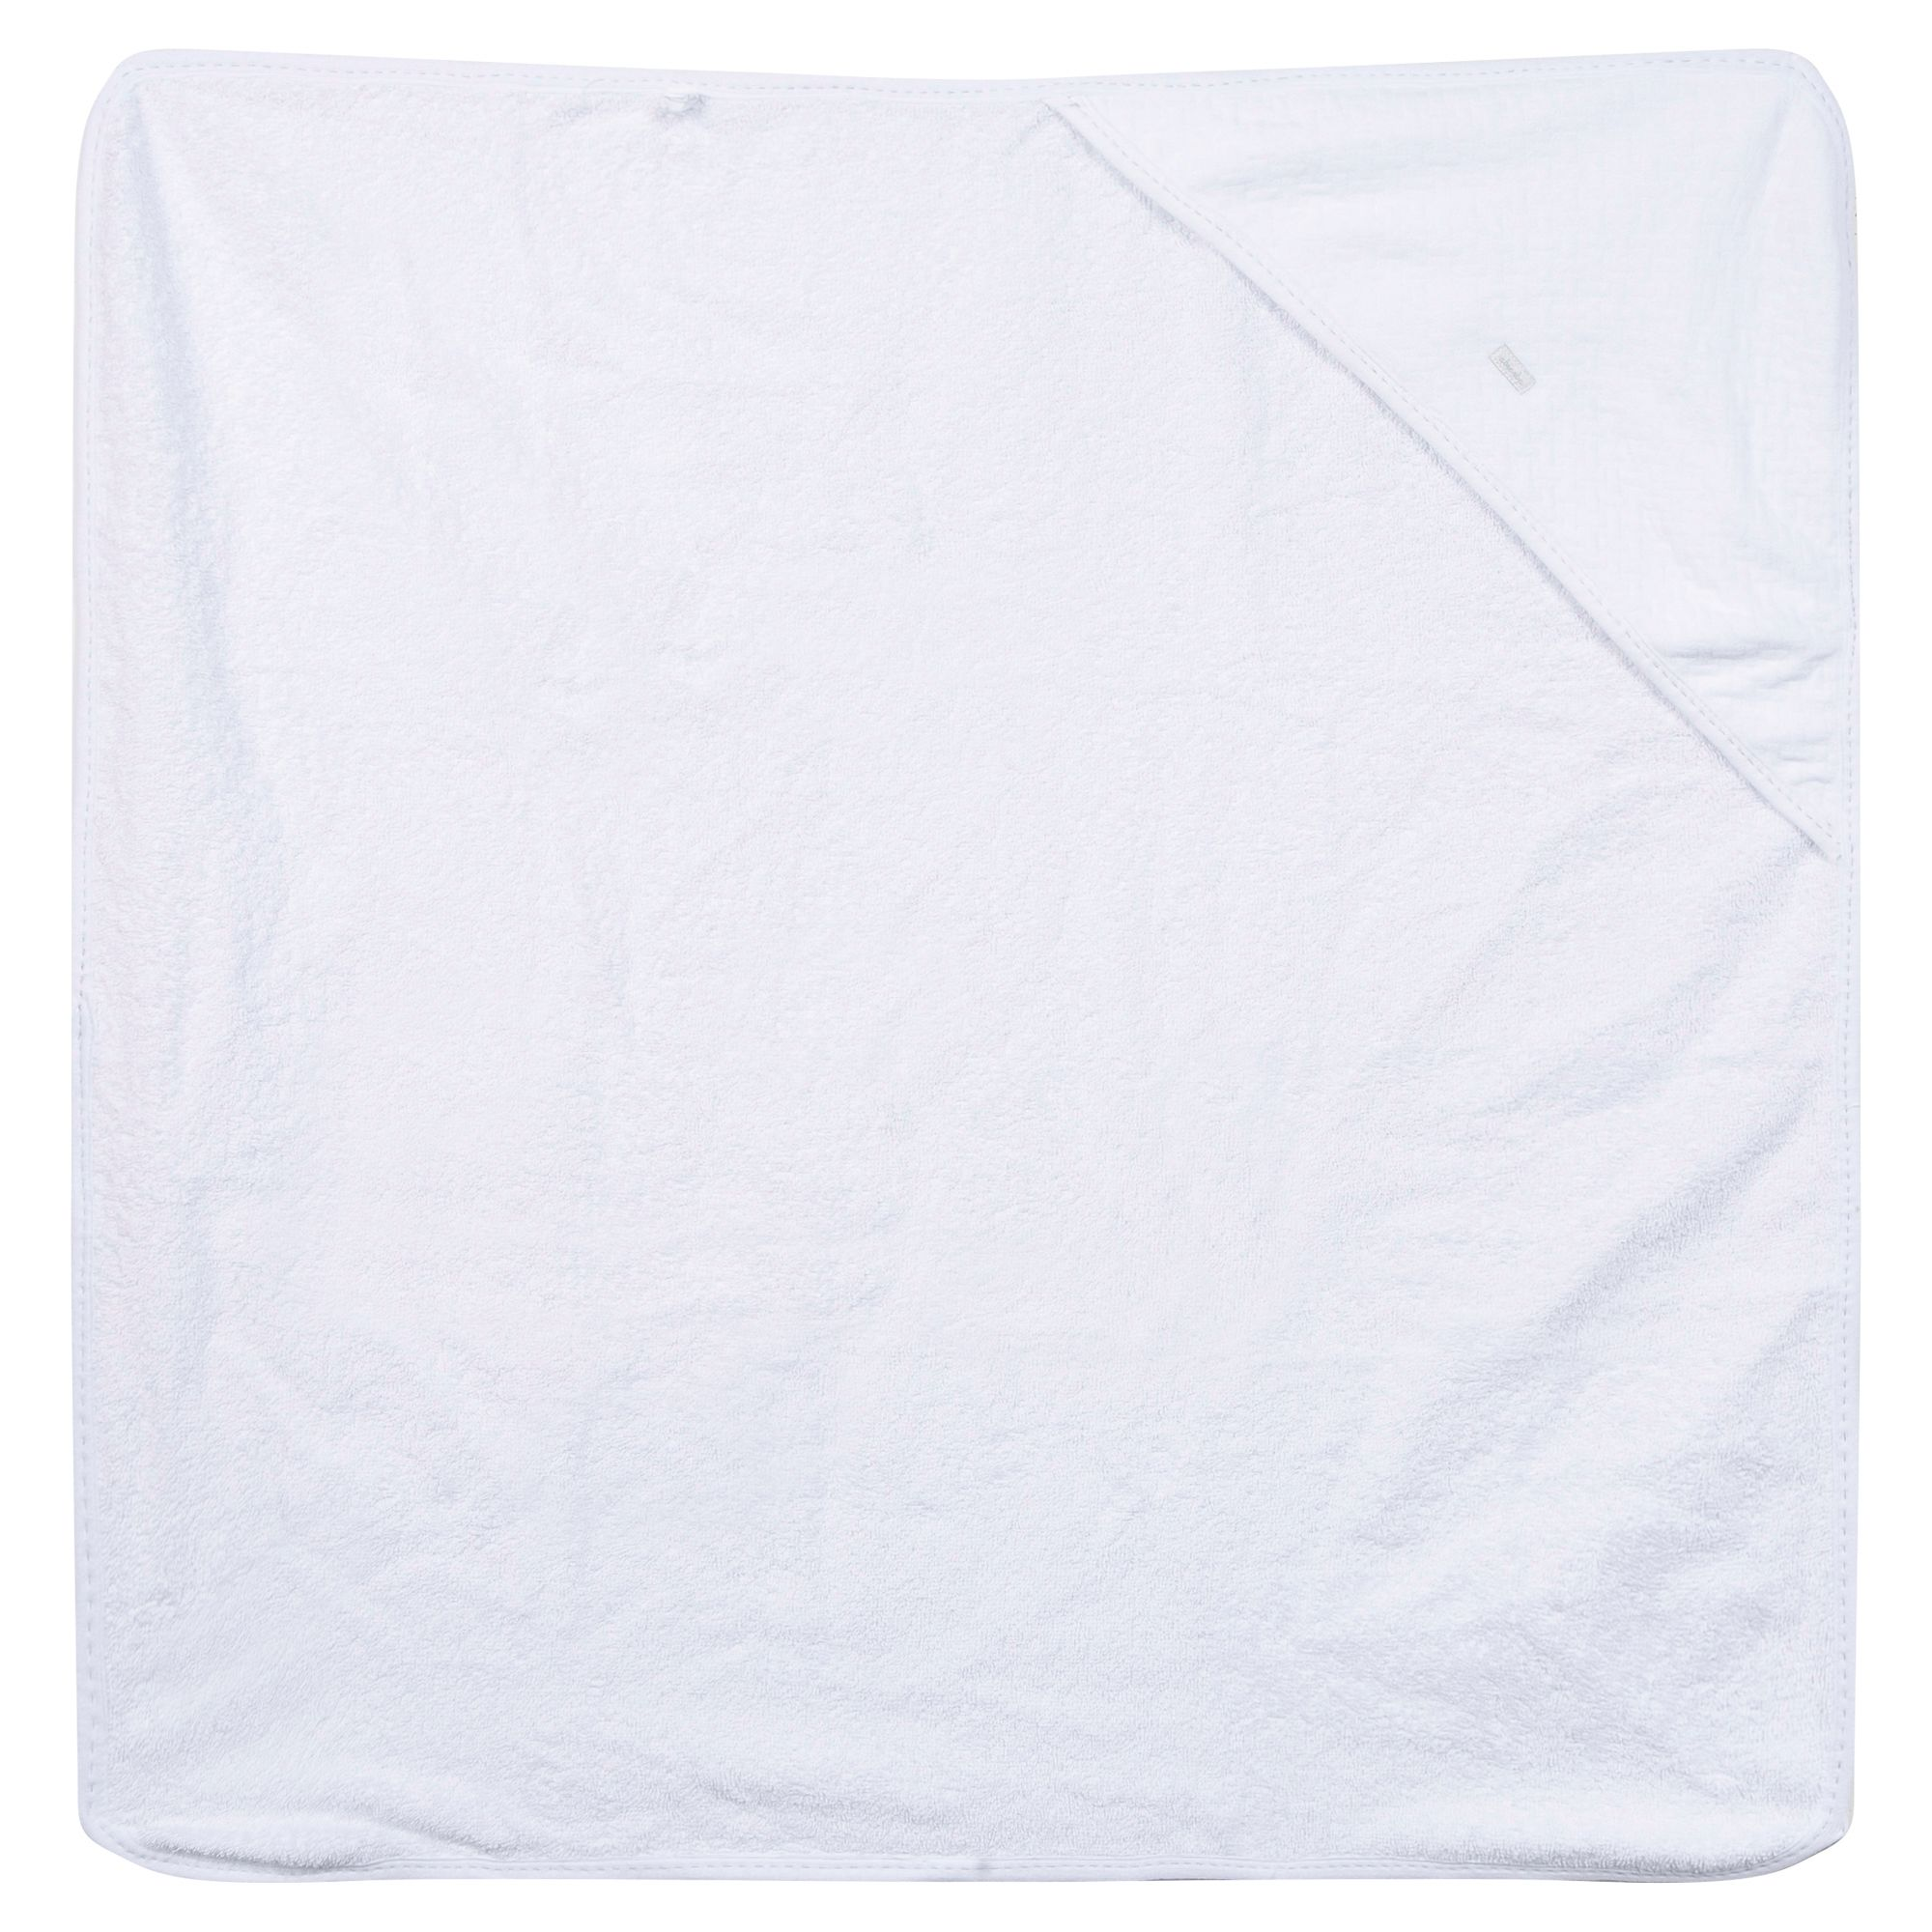 Absorba Baby Cotton Hooded Bath Towel White